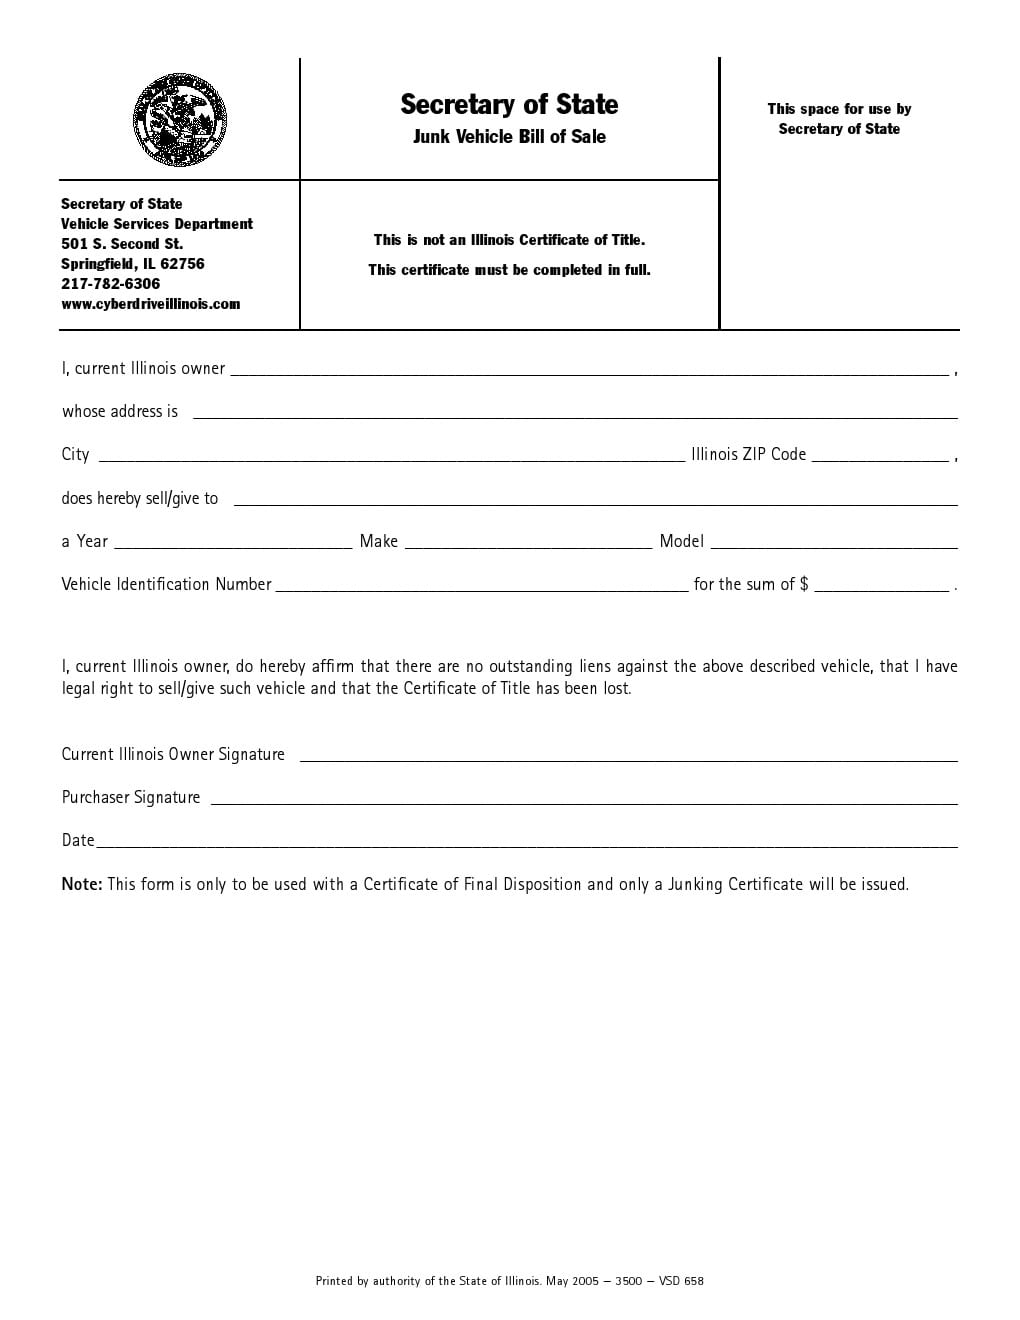 Download Free Business Forms Form Download Illinois motorcycle bill of sale